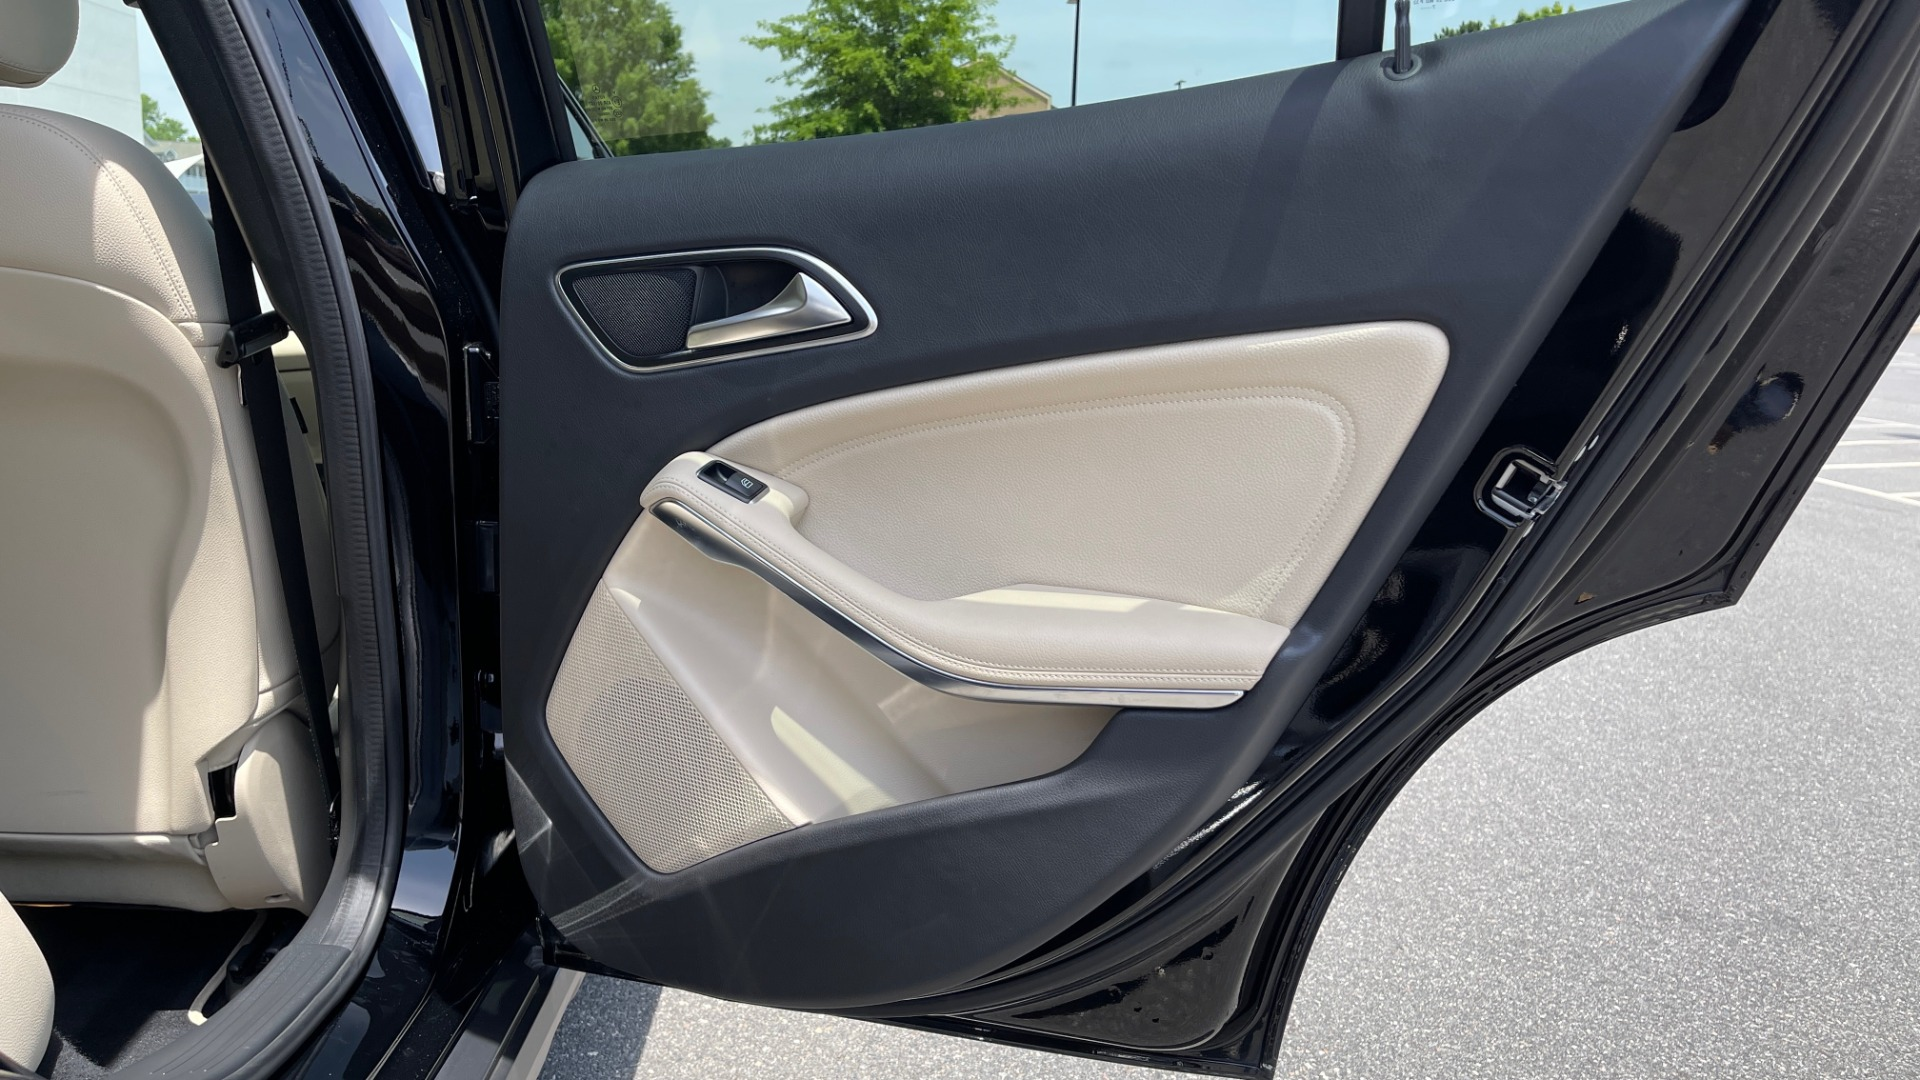 Used 2018 Mercedes-Benz GLA 250 4MATIC SUV / PANO-ROOF / HTD STS / BLIND SPOT ASST / APPLE for sale $31,995 at Formula Imports in Charlotte NC 28227 70